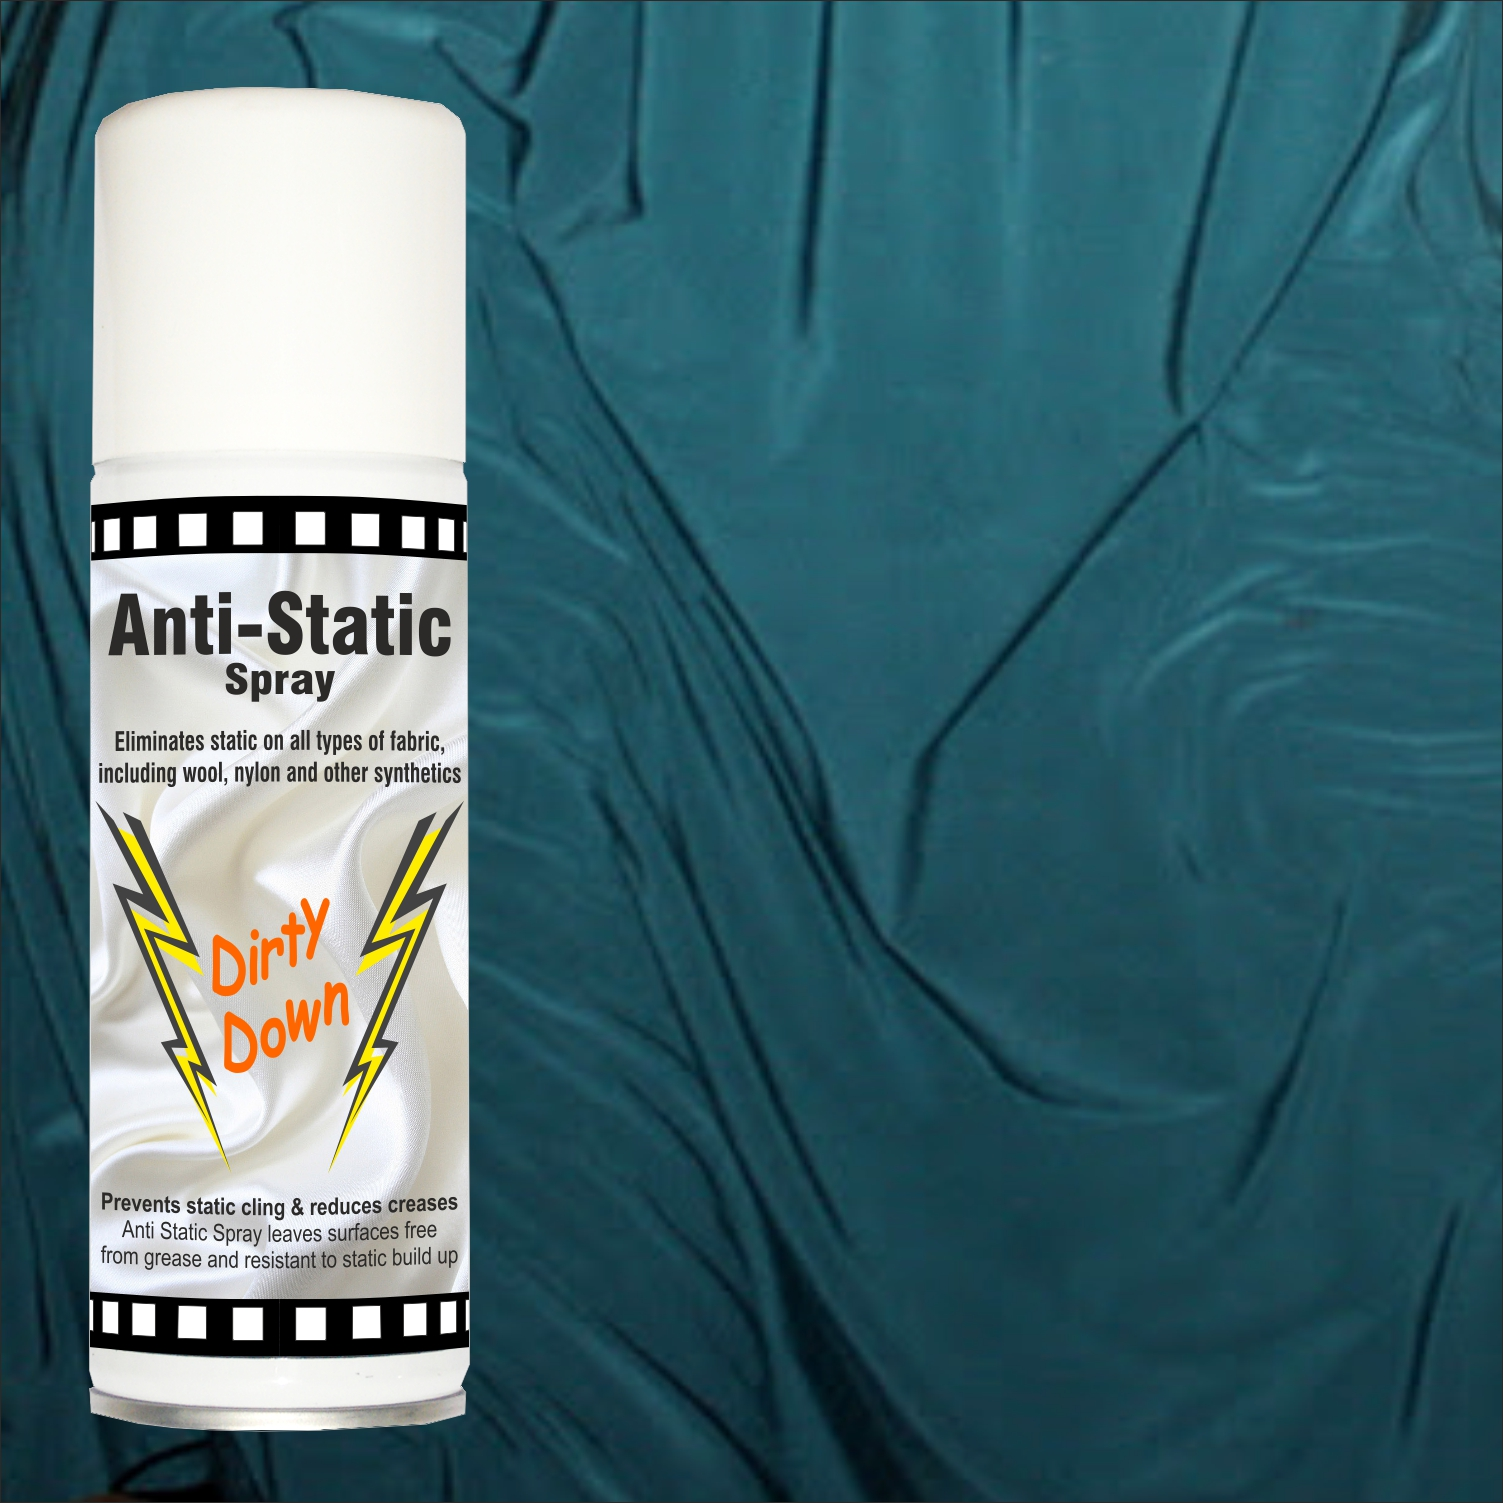 Anti-static spray for fabrics